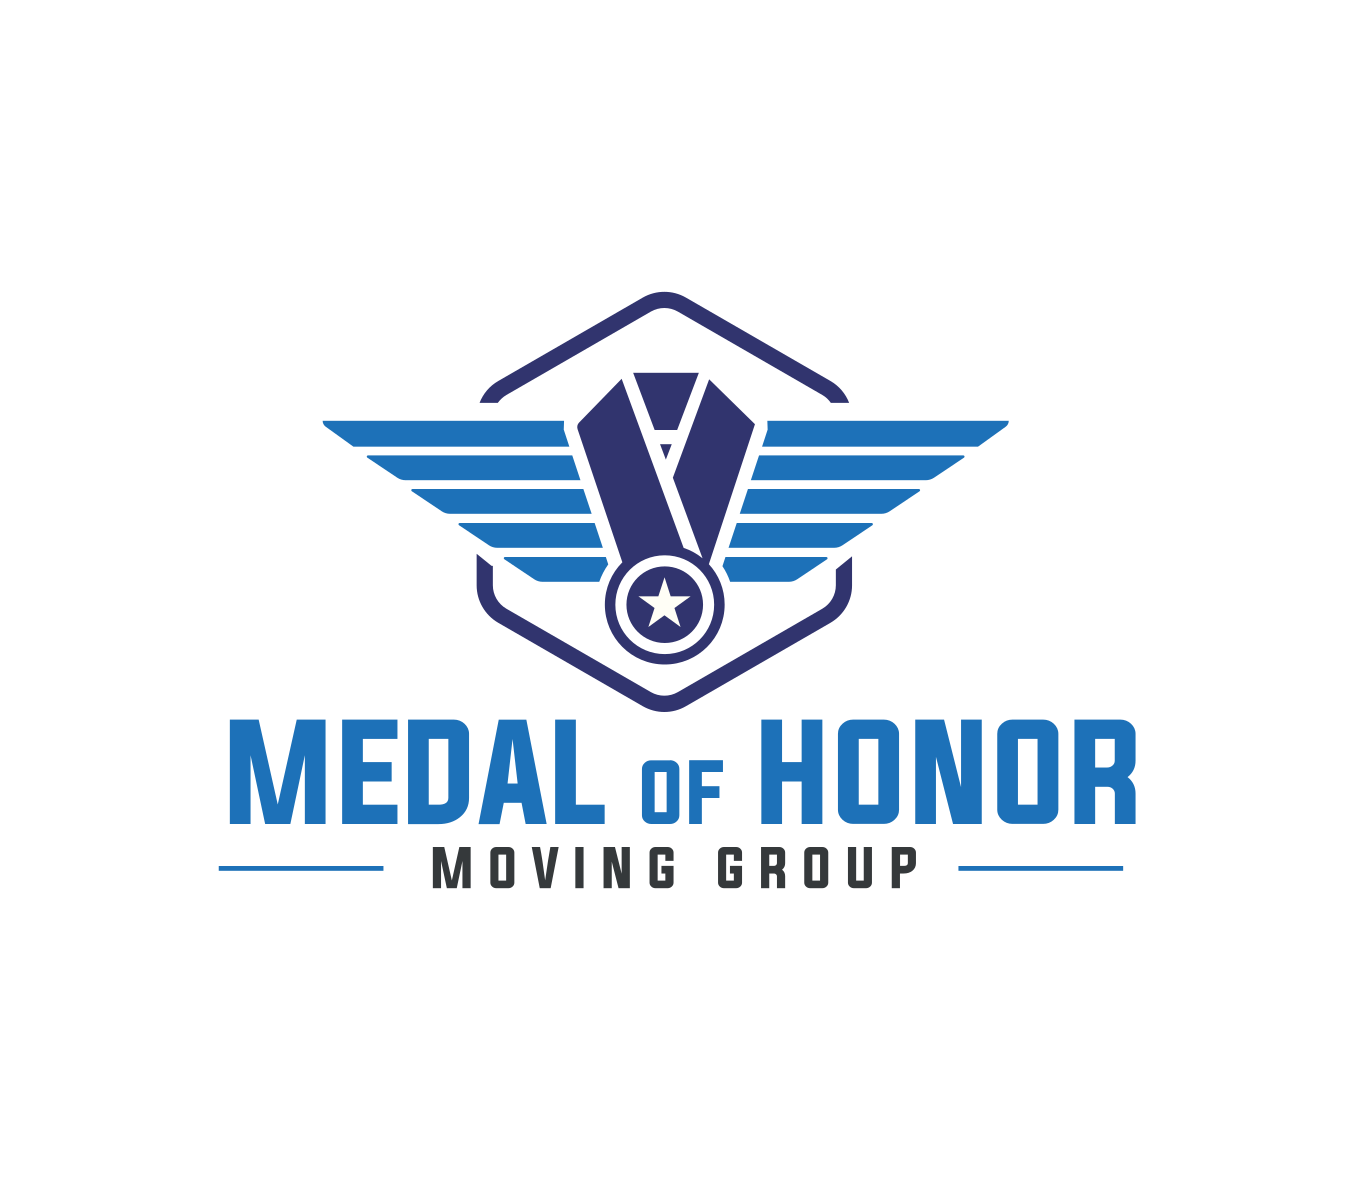 Medal Of Honor Moving Group